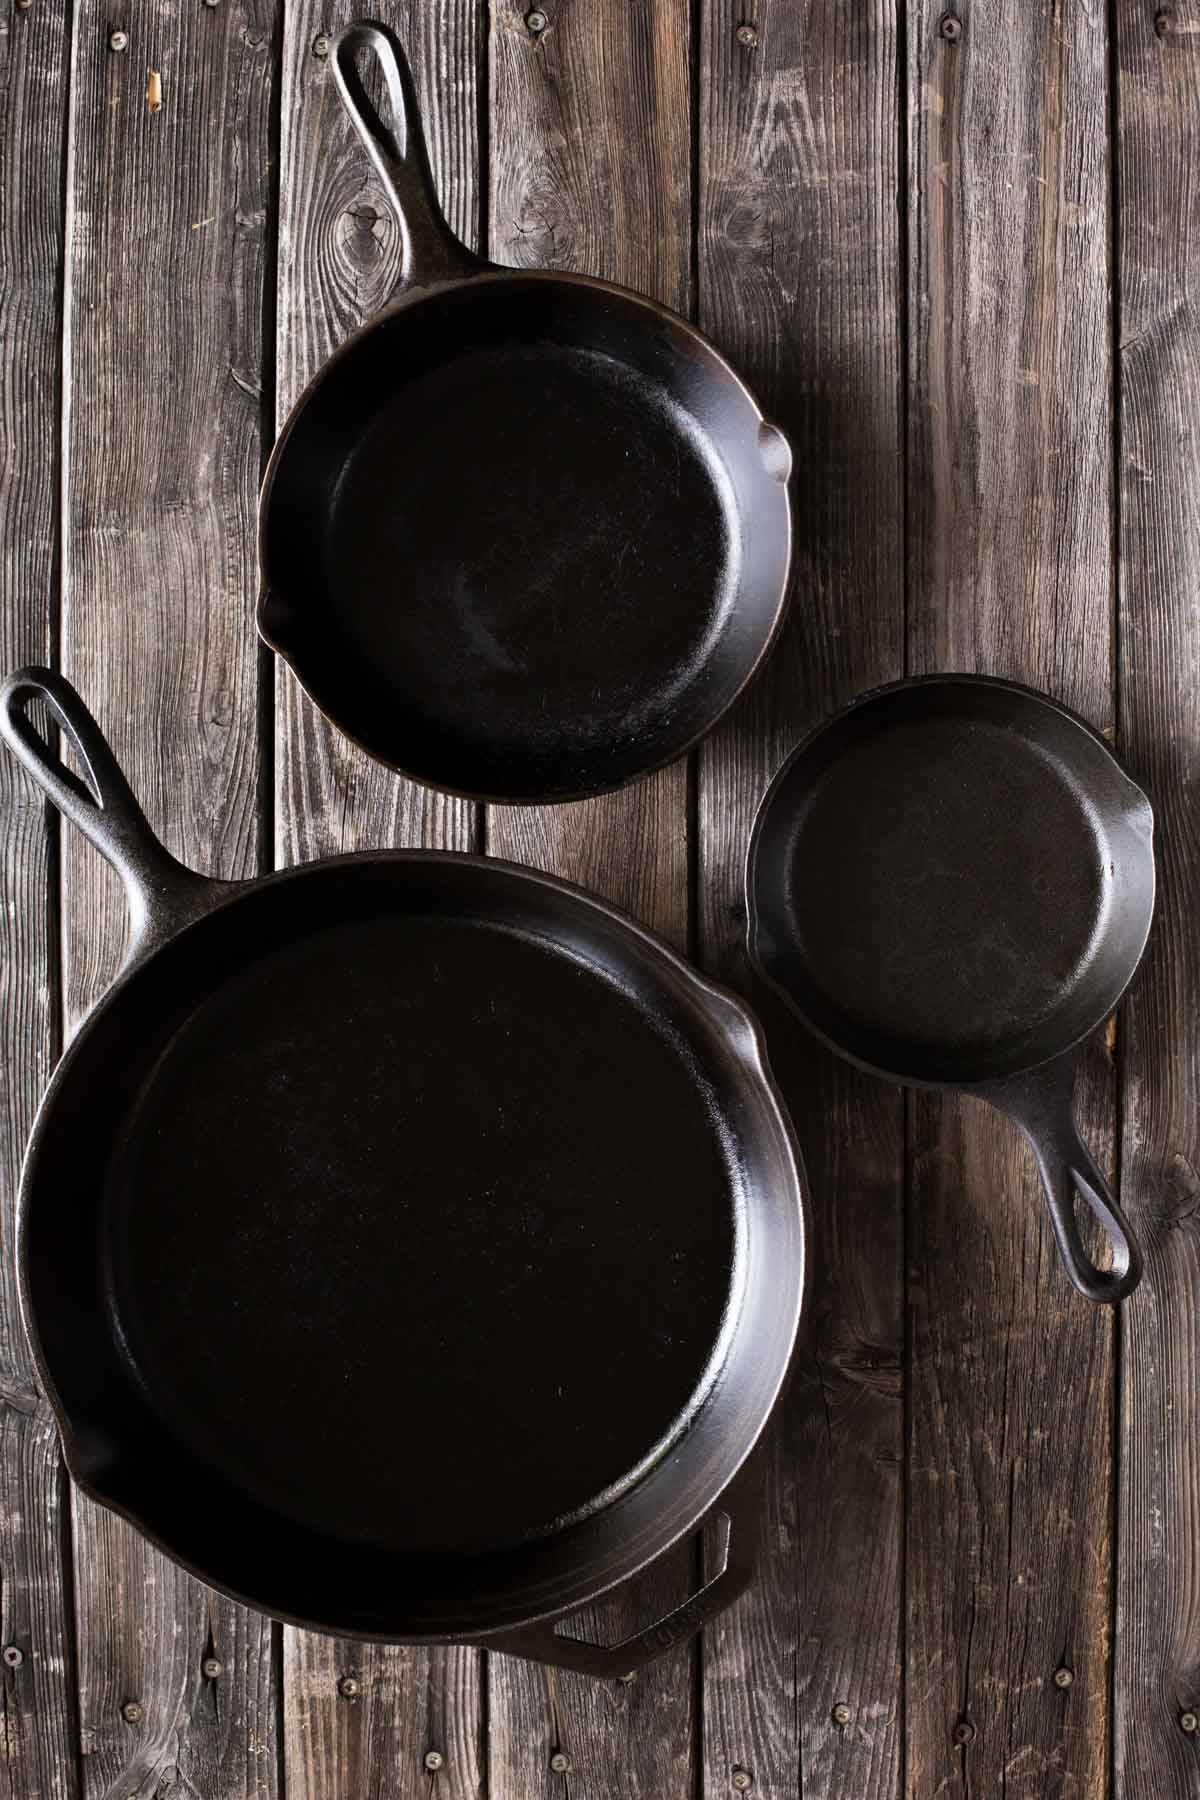 A top down view of a small, medium, and large sized cast iron skillet on a wooden background.